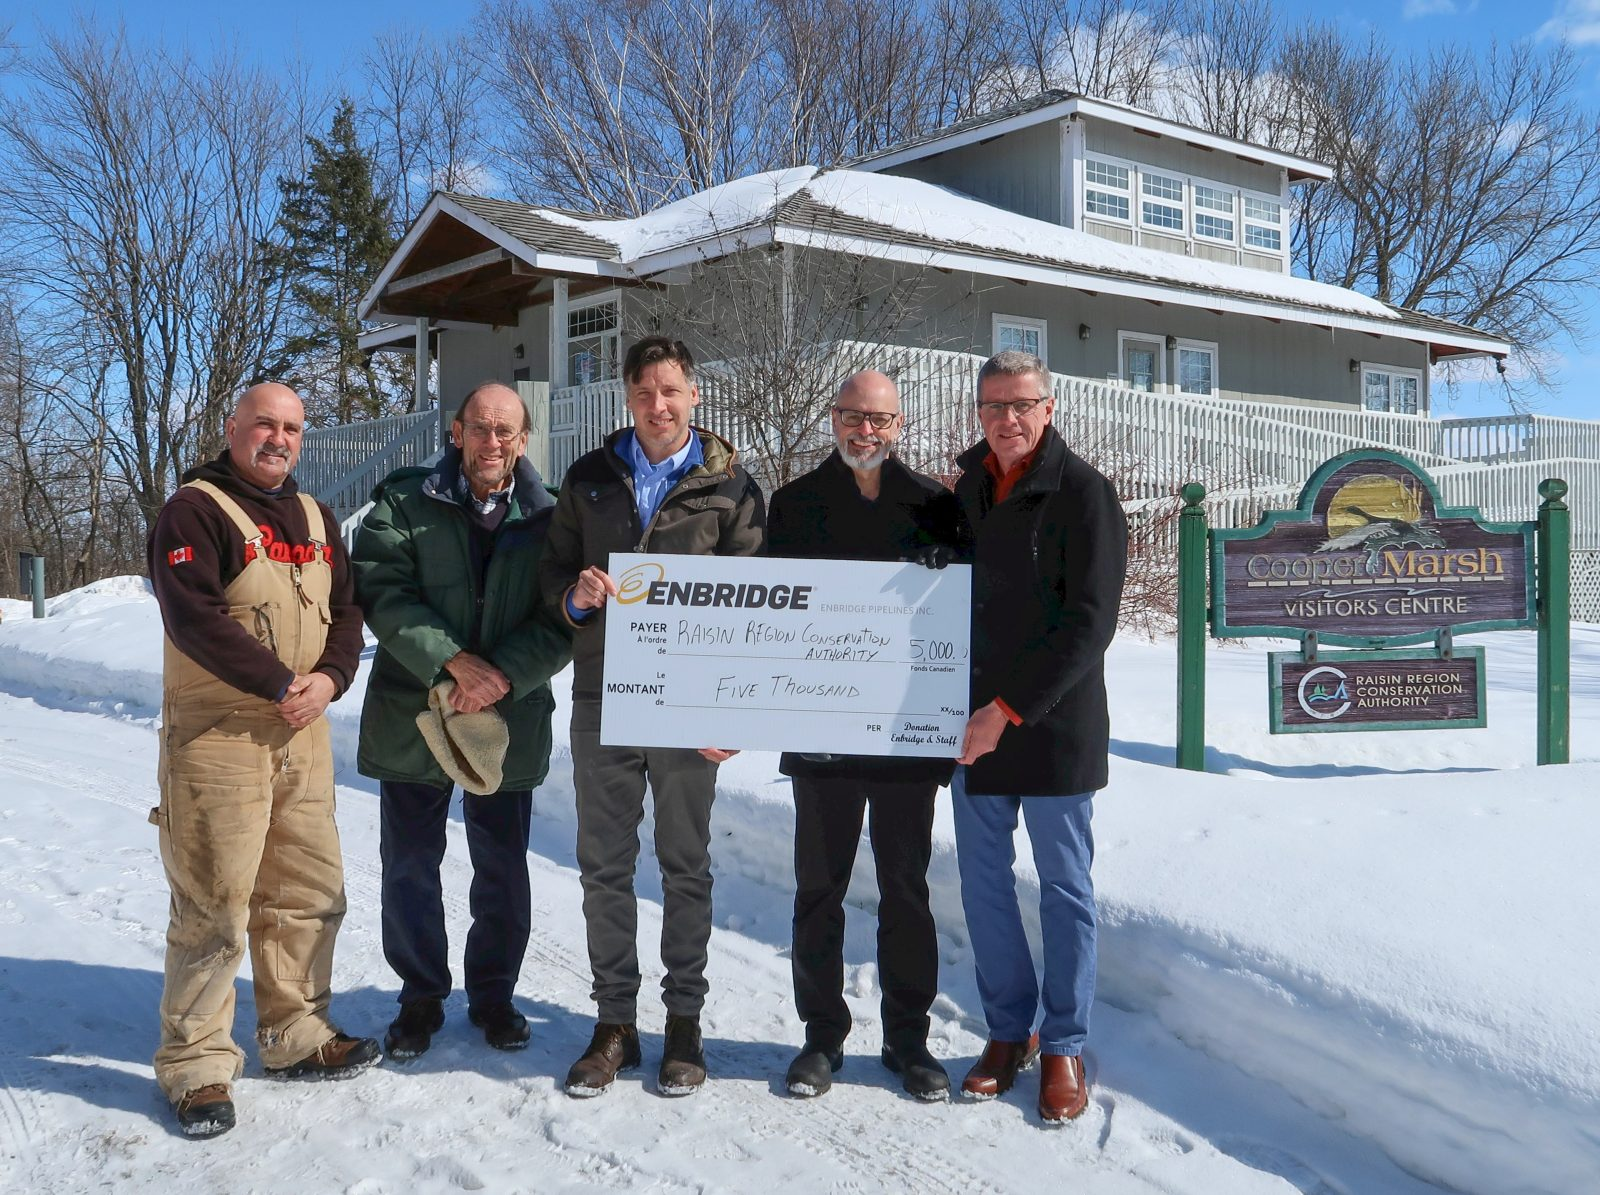 Enbridge Donates $5,000 to RRCA for Cooper Marsh Visitors Centre Upgrades